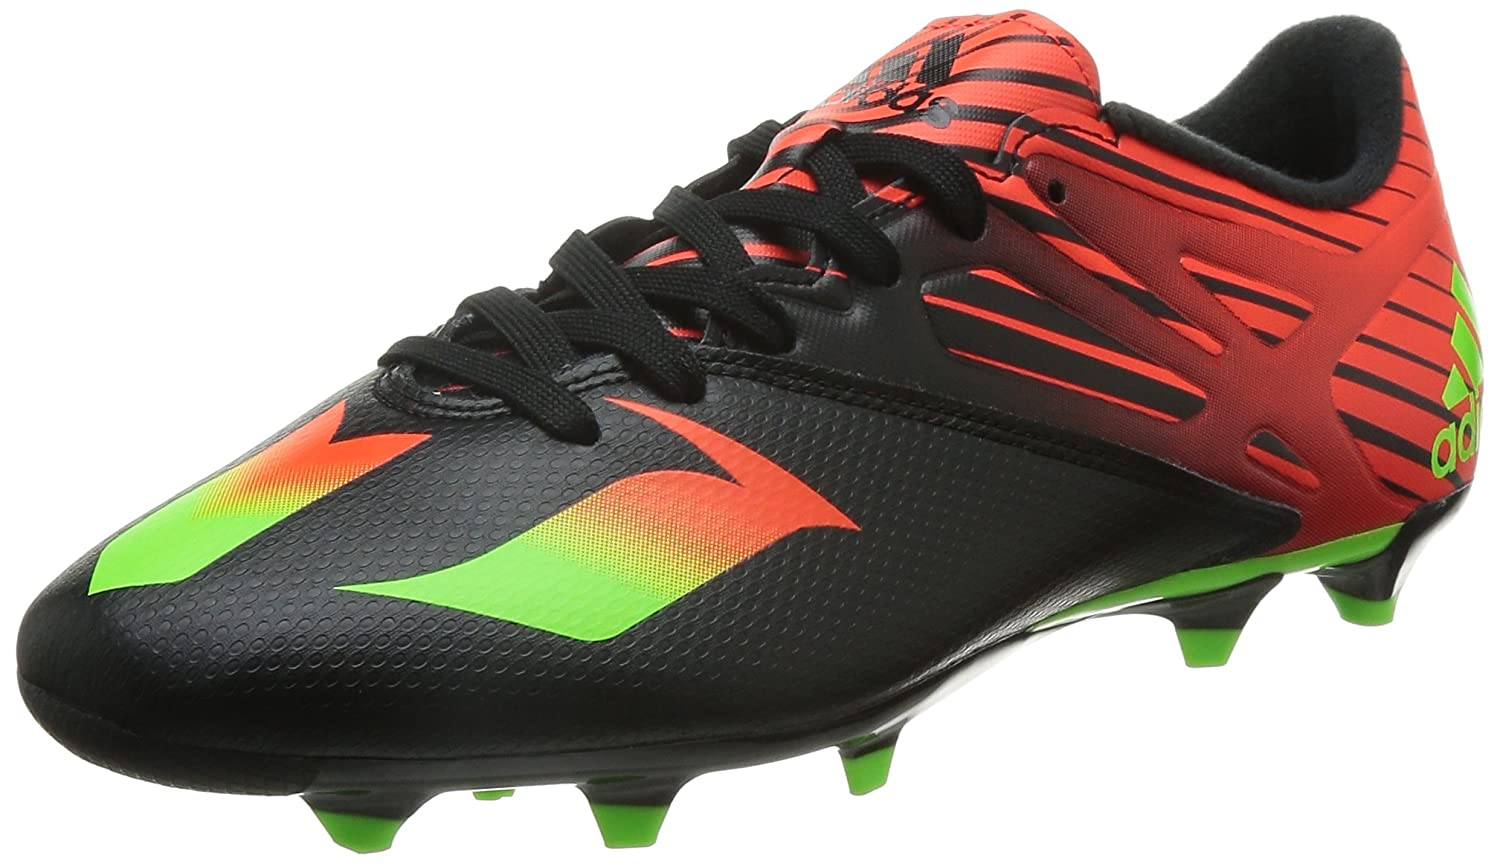 Adidas Messi 15.3 FG/AG, Menu0027s Football Boots: Amazon.co.uk: Shoes U0026 Bags